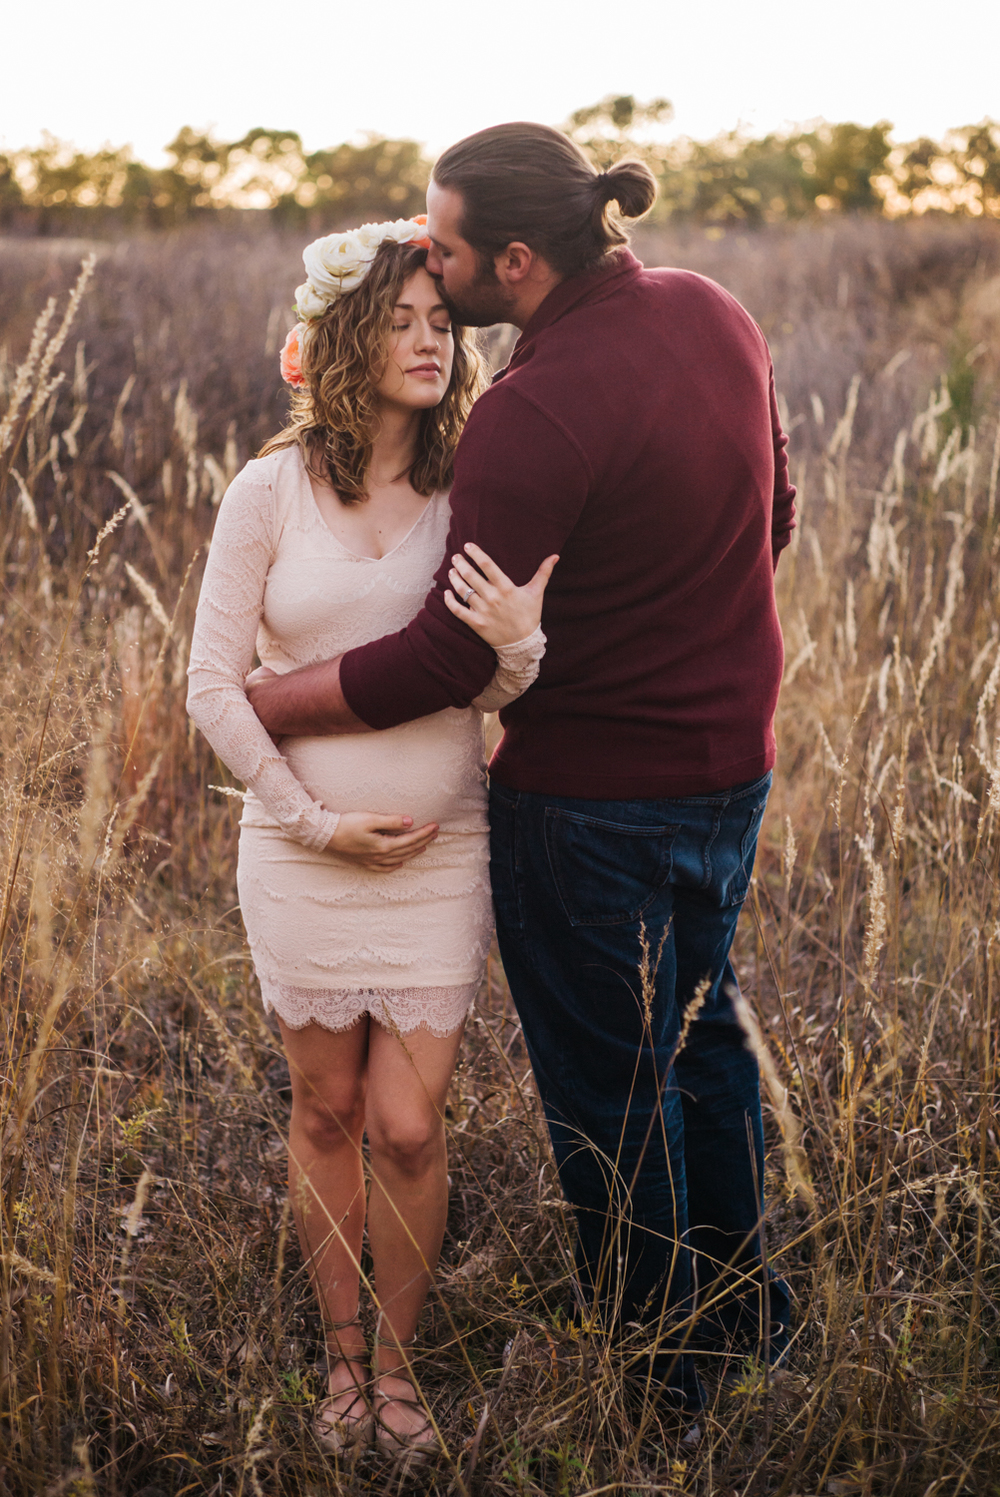 Wichita, Kansas Maternity Photography-Neal Dieker-Wichita, Kansas Photographer-133.jpg